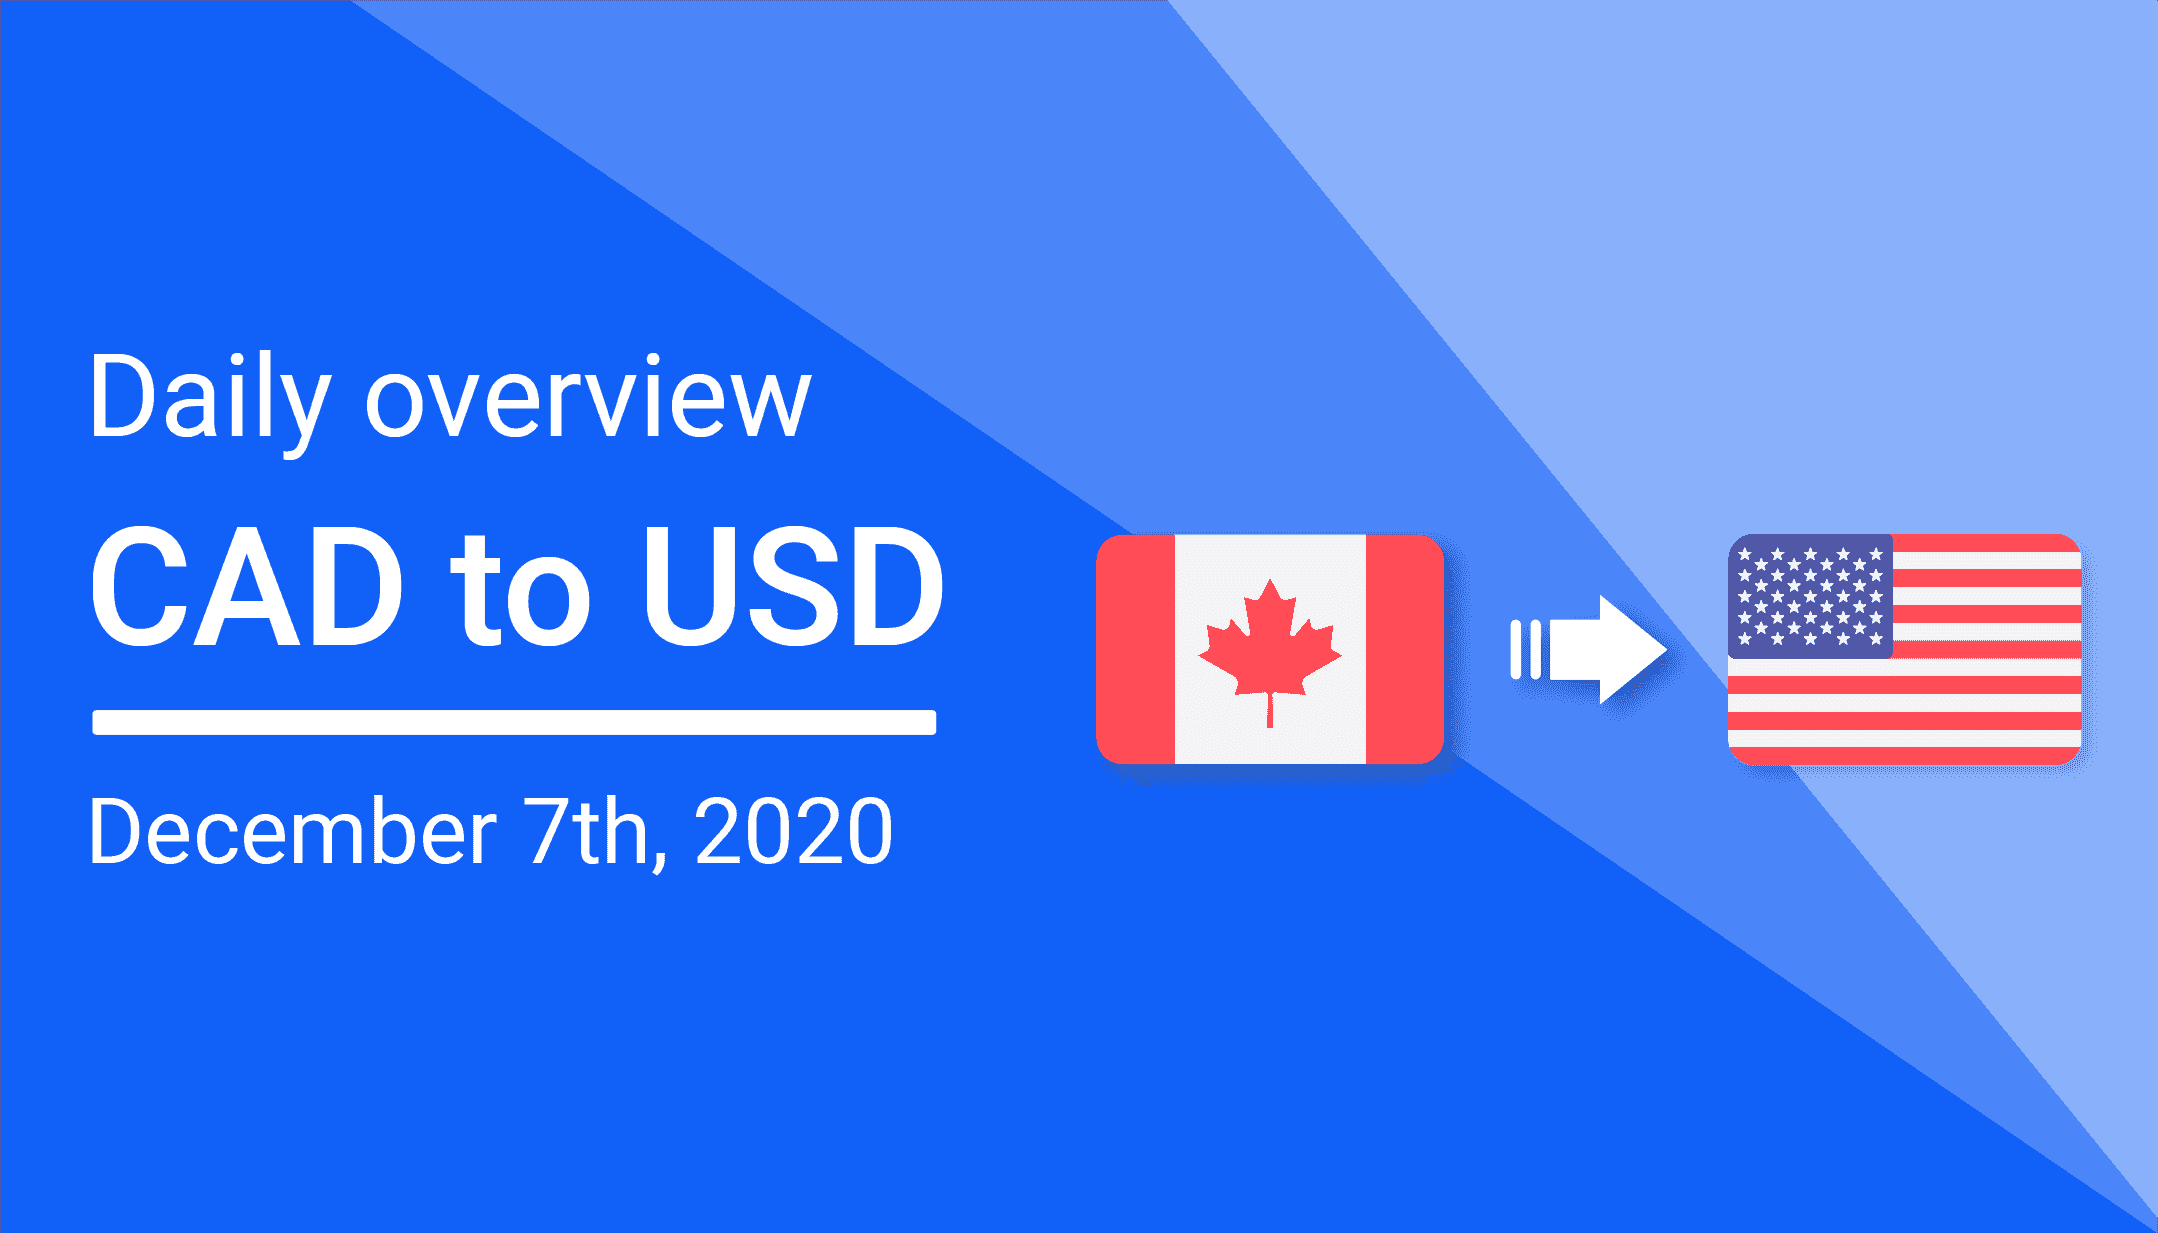 CAD to USD Daily Overview: December 7th